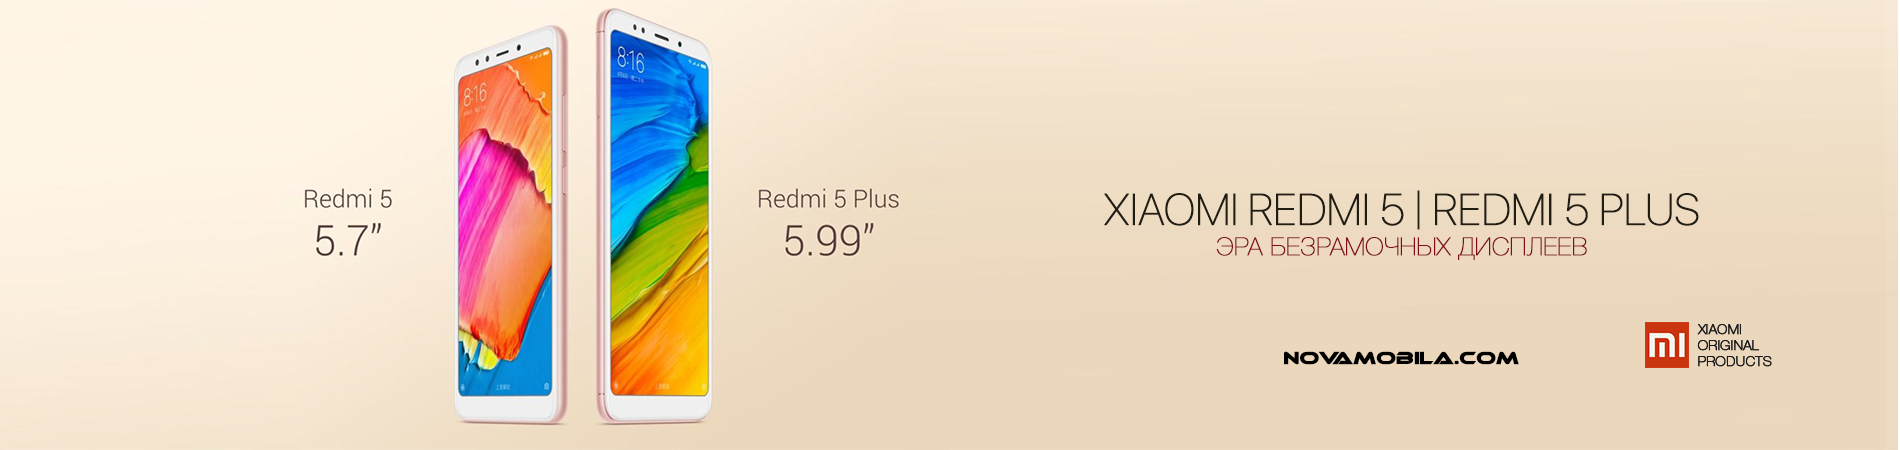 redmi5plus11